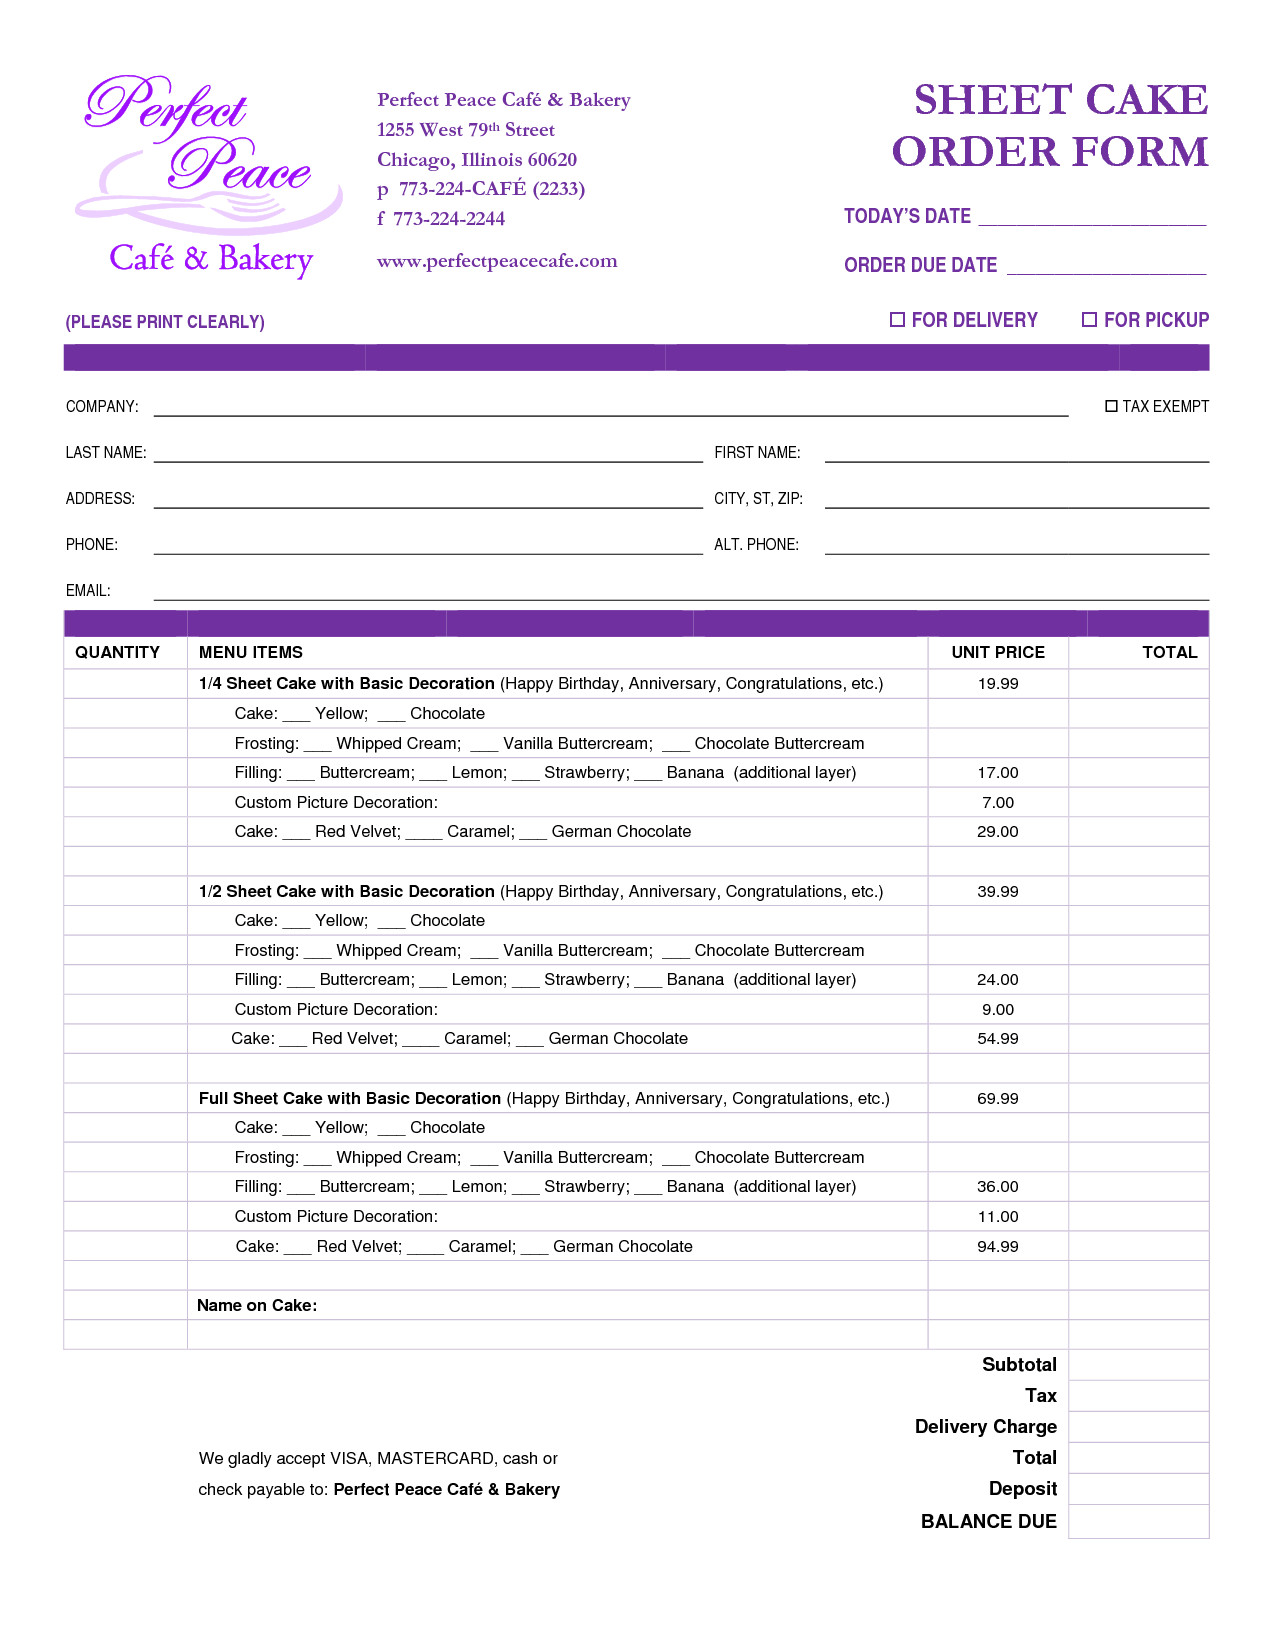 Cake order forms Templates Cake order form Template Free Google Search